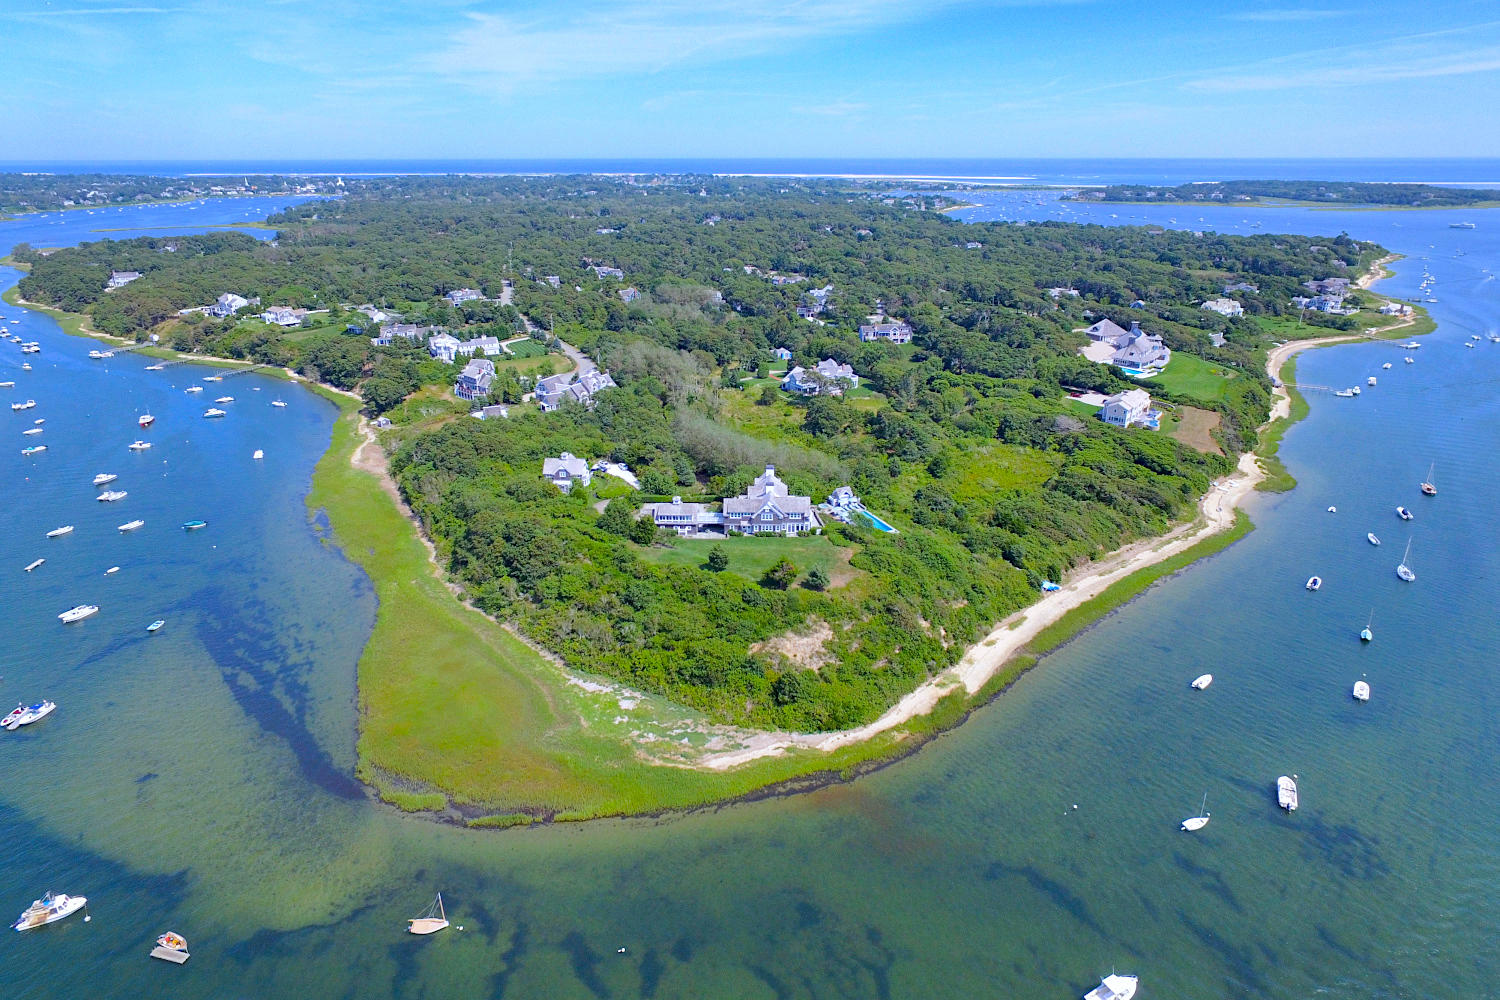 click to view more details 300 Stage Neck Road, Chatham, MA 02633